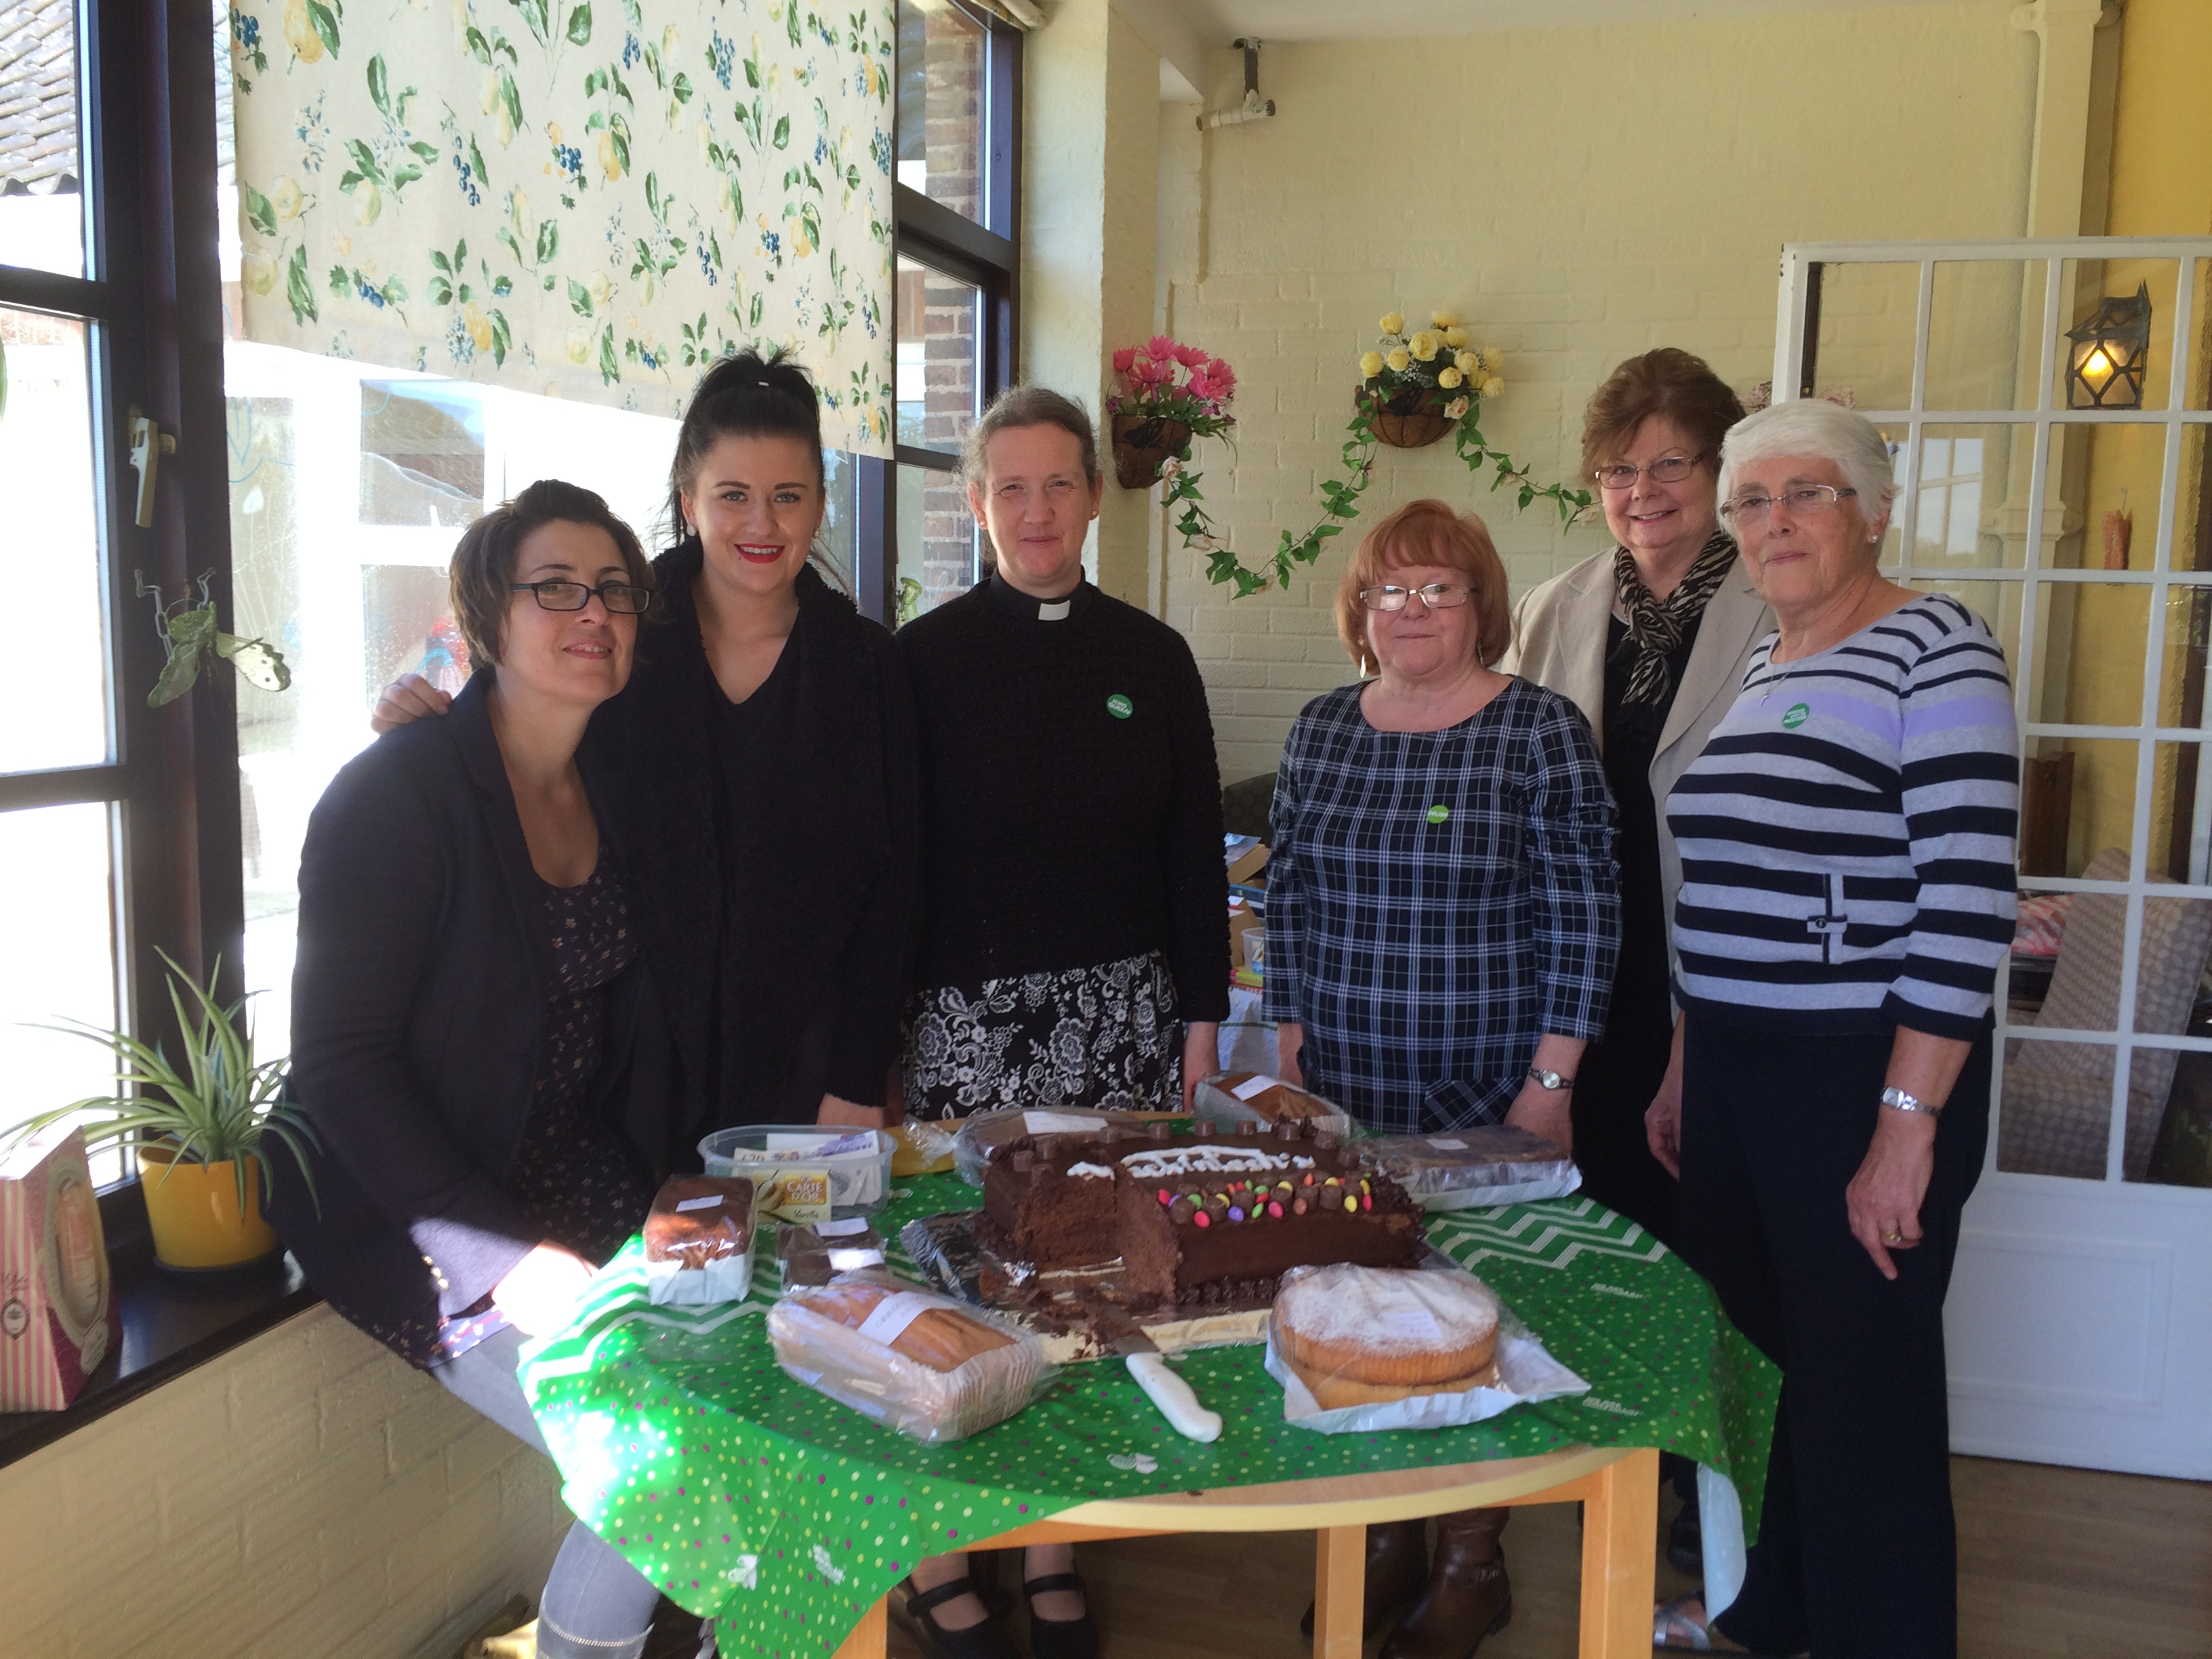 Brooke House care home found a sweet way to raise money for Macmillan Cancer Support